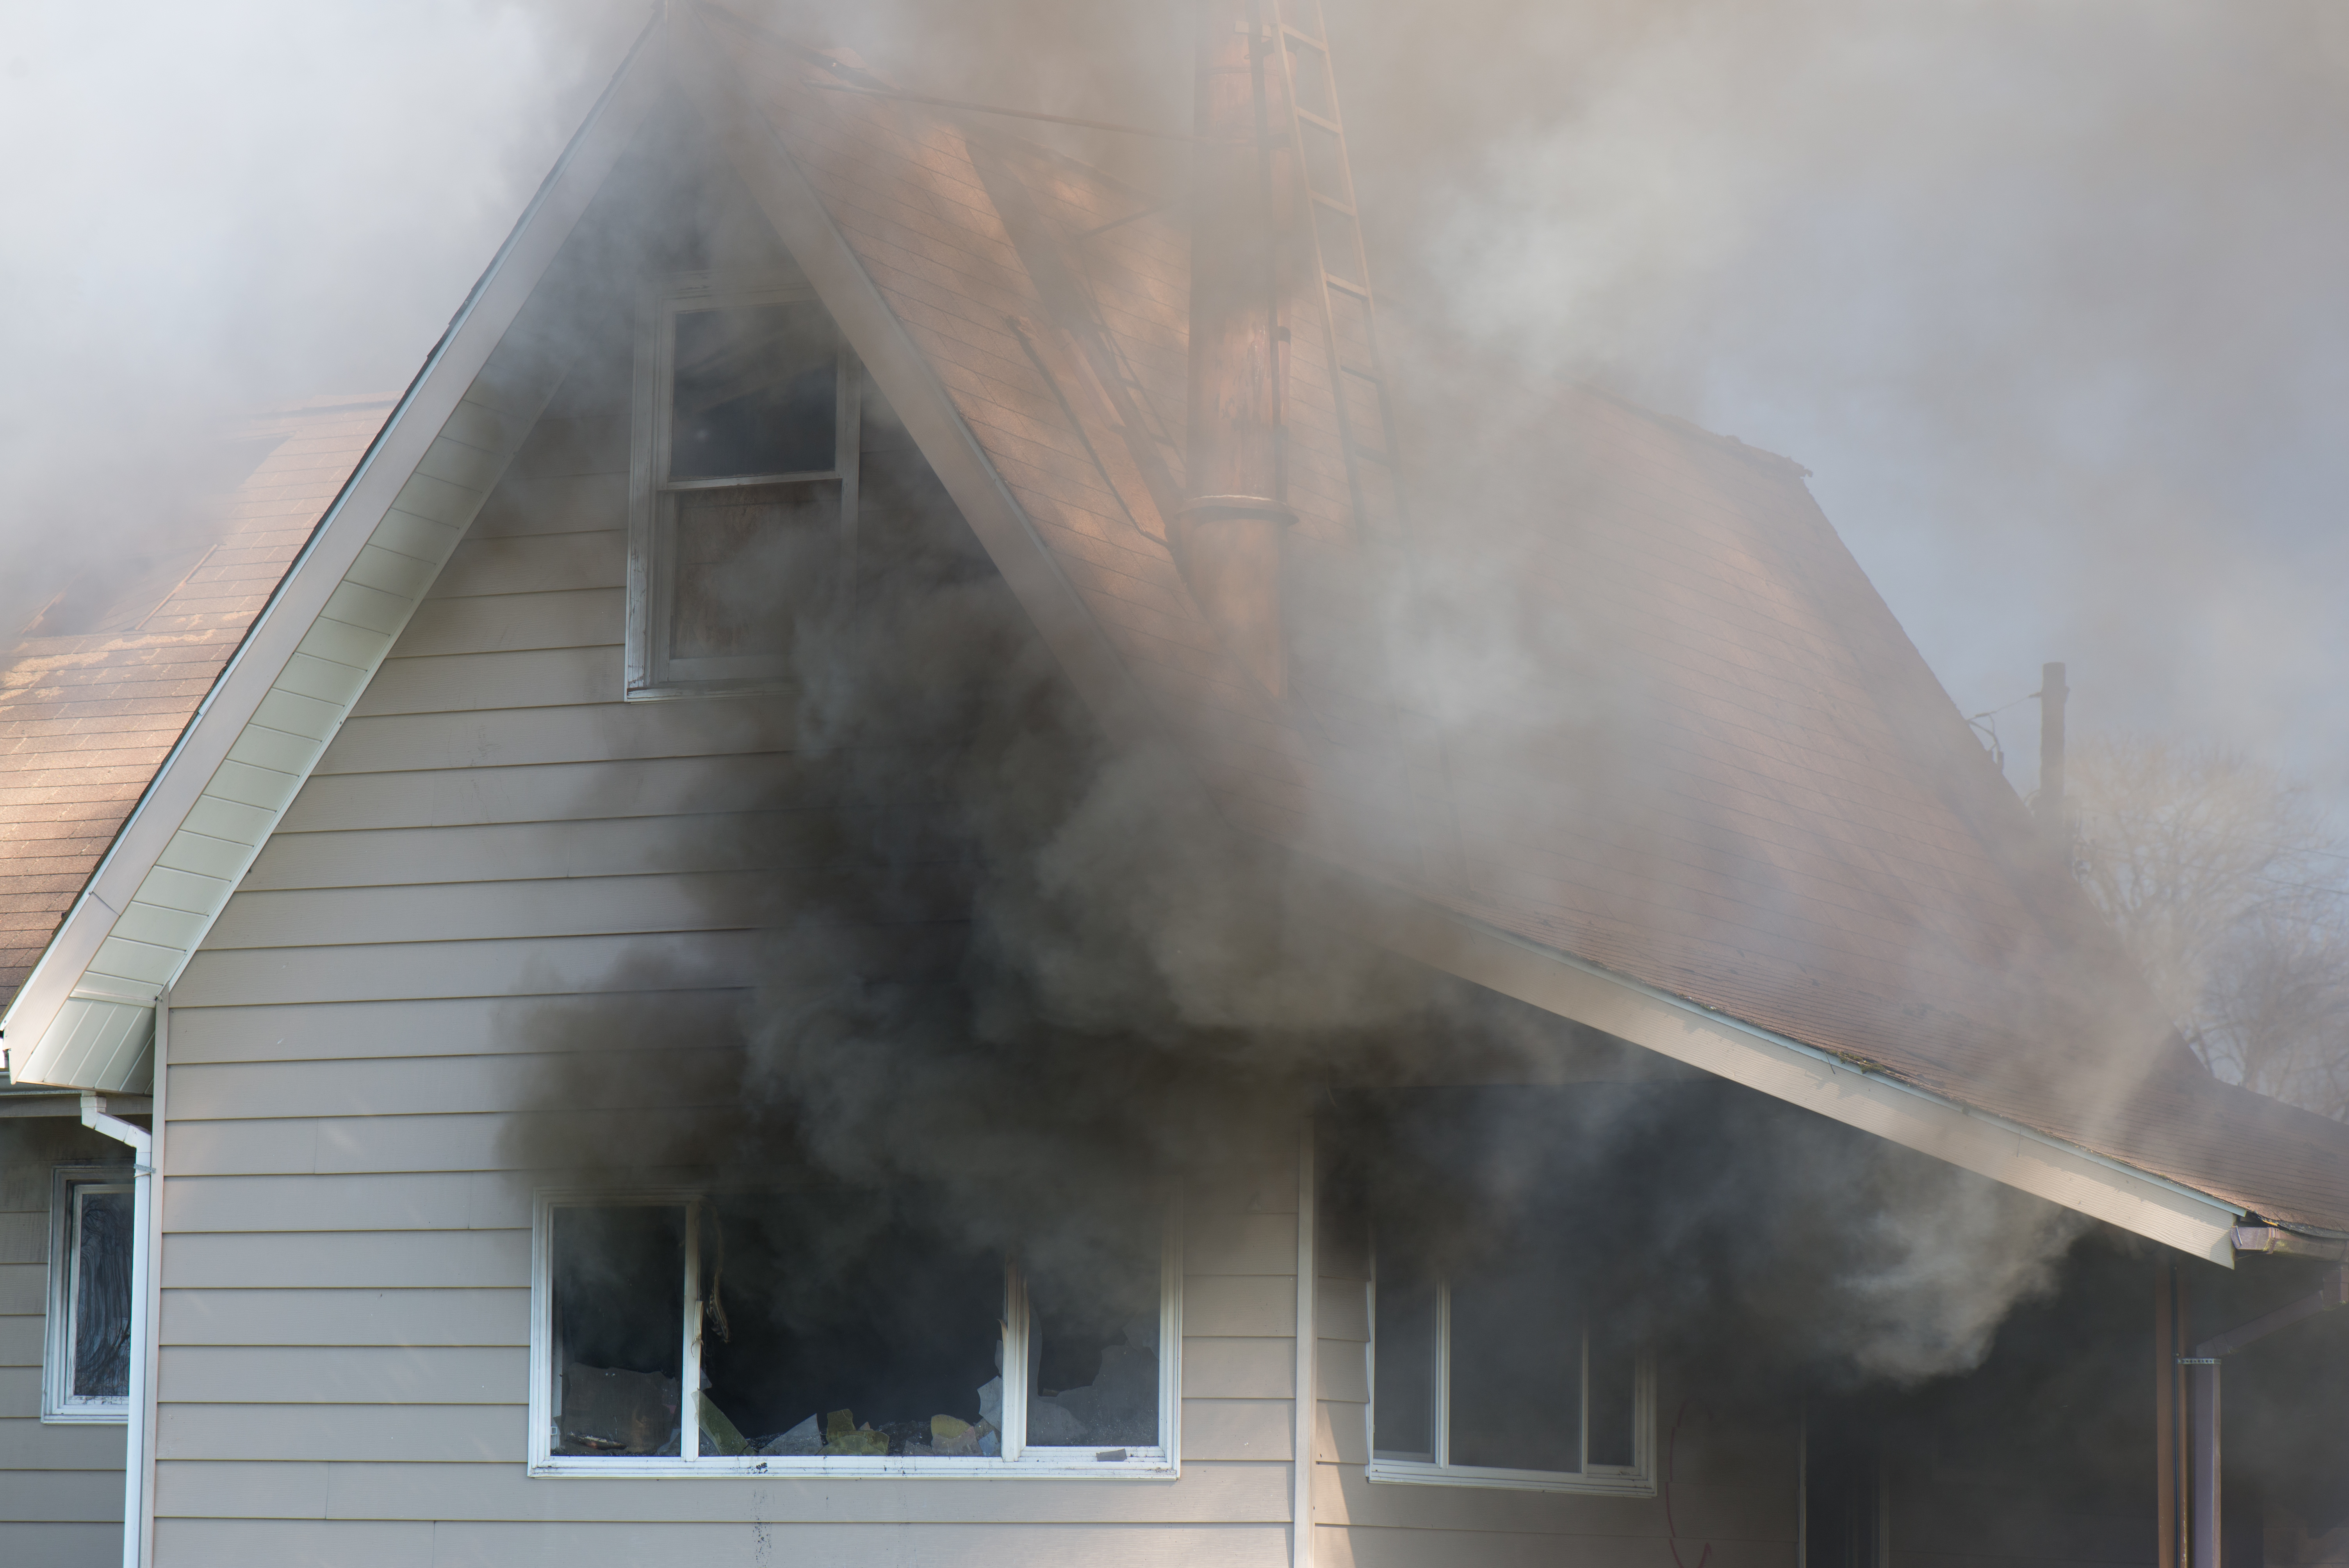 How to Clean Ceilings with Smoke Residue